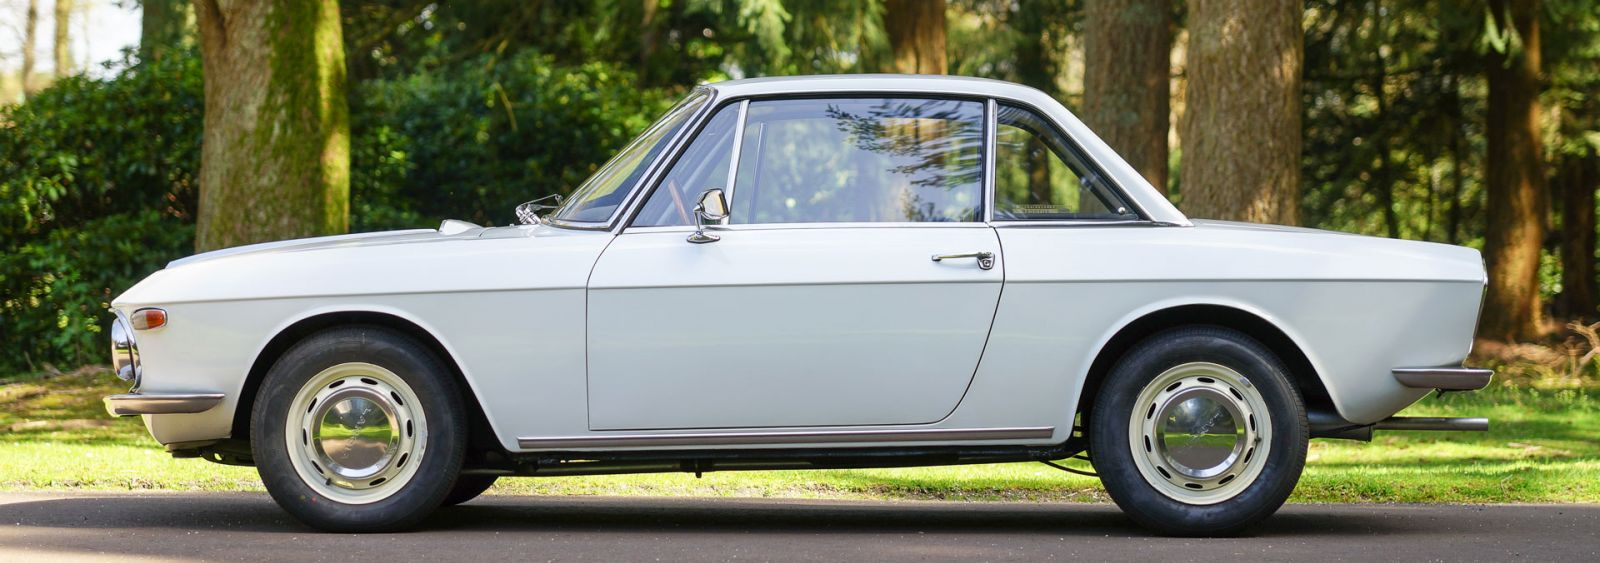 https://www.classicargarage.com/assets/images/0/xlancia-fulvia-white-02-9033c7f0.jpg.pagespeed.ic.kBY6ucTyty.jpg